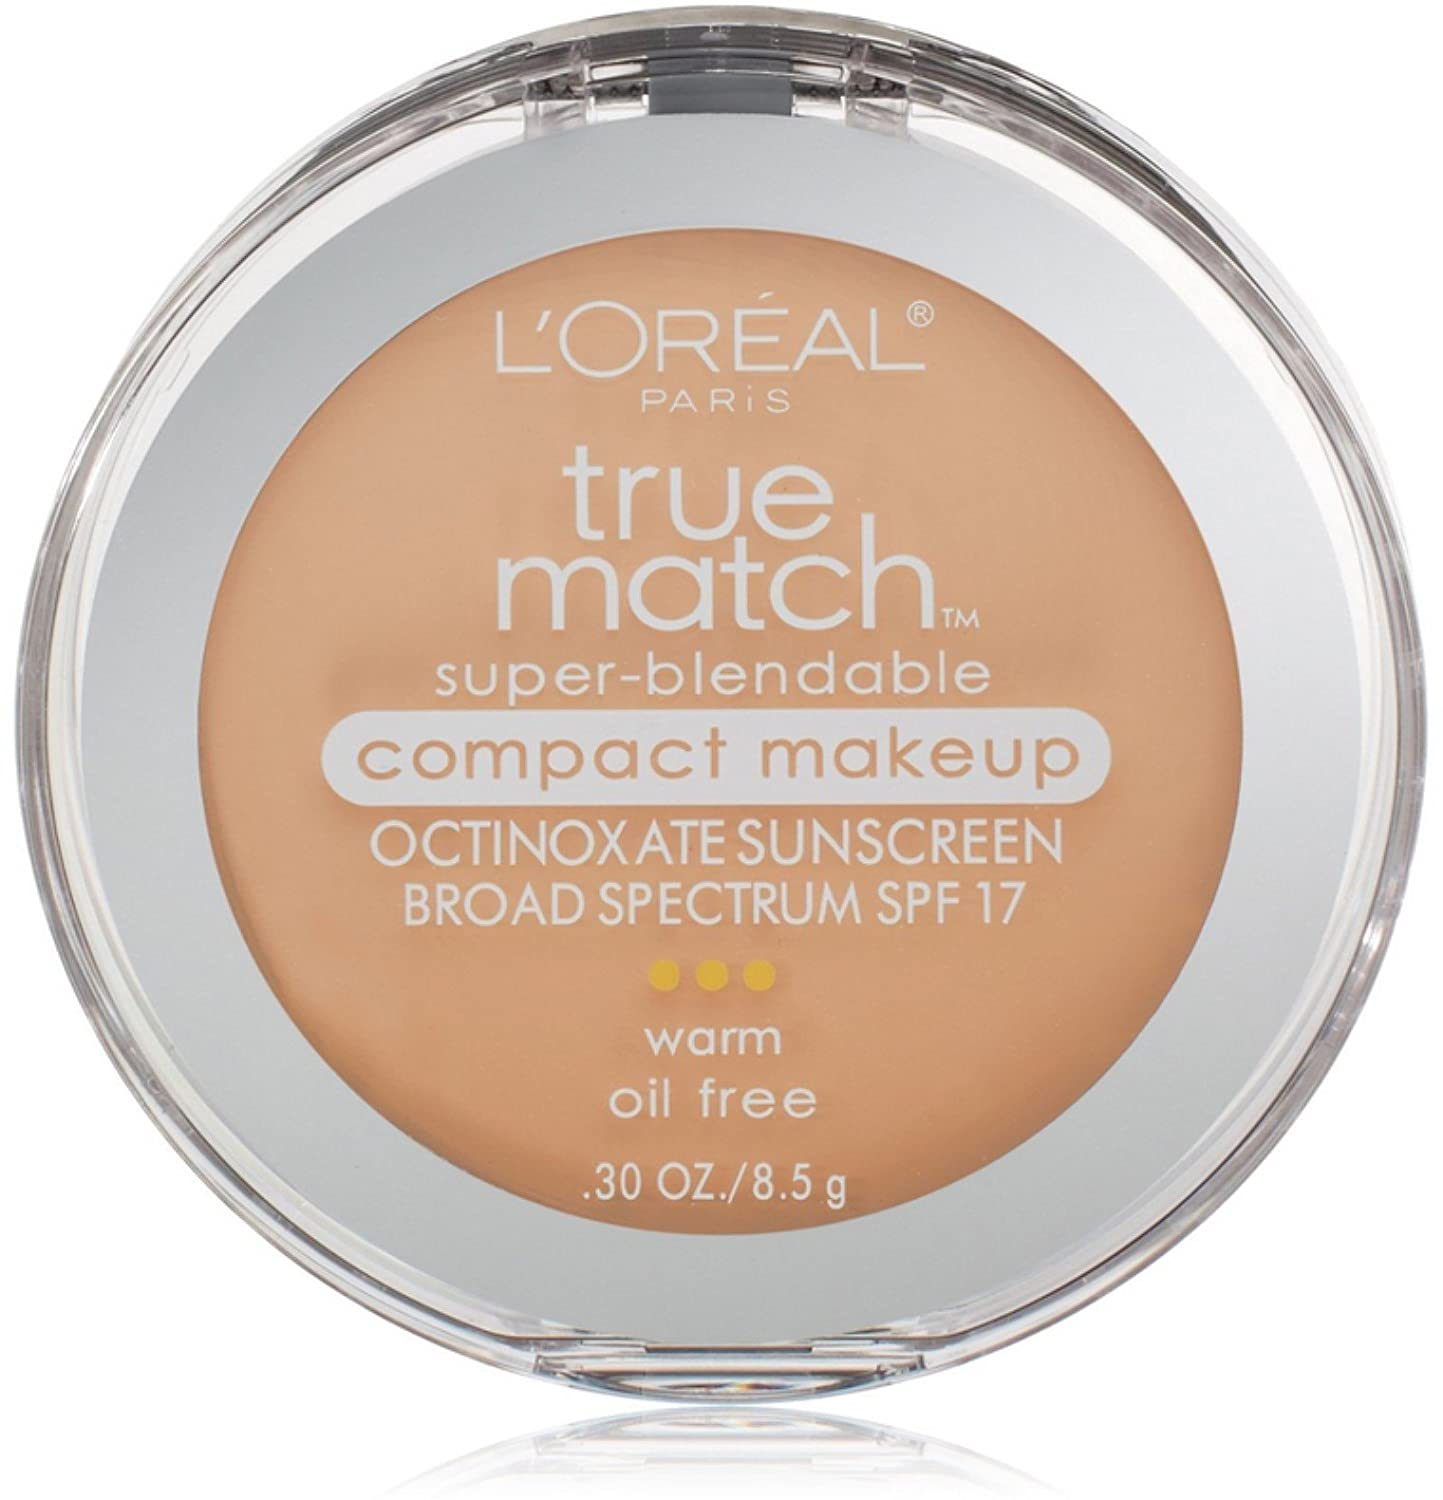 L'Oreal True Match Super-Blendable Compact Makeup, Light Ivory [W2], 0.30 oz (Pack of 2)